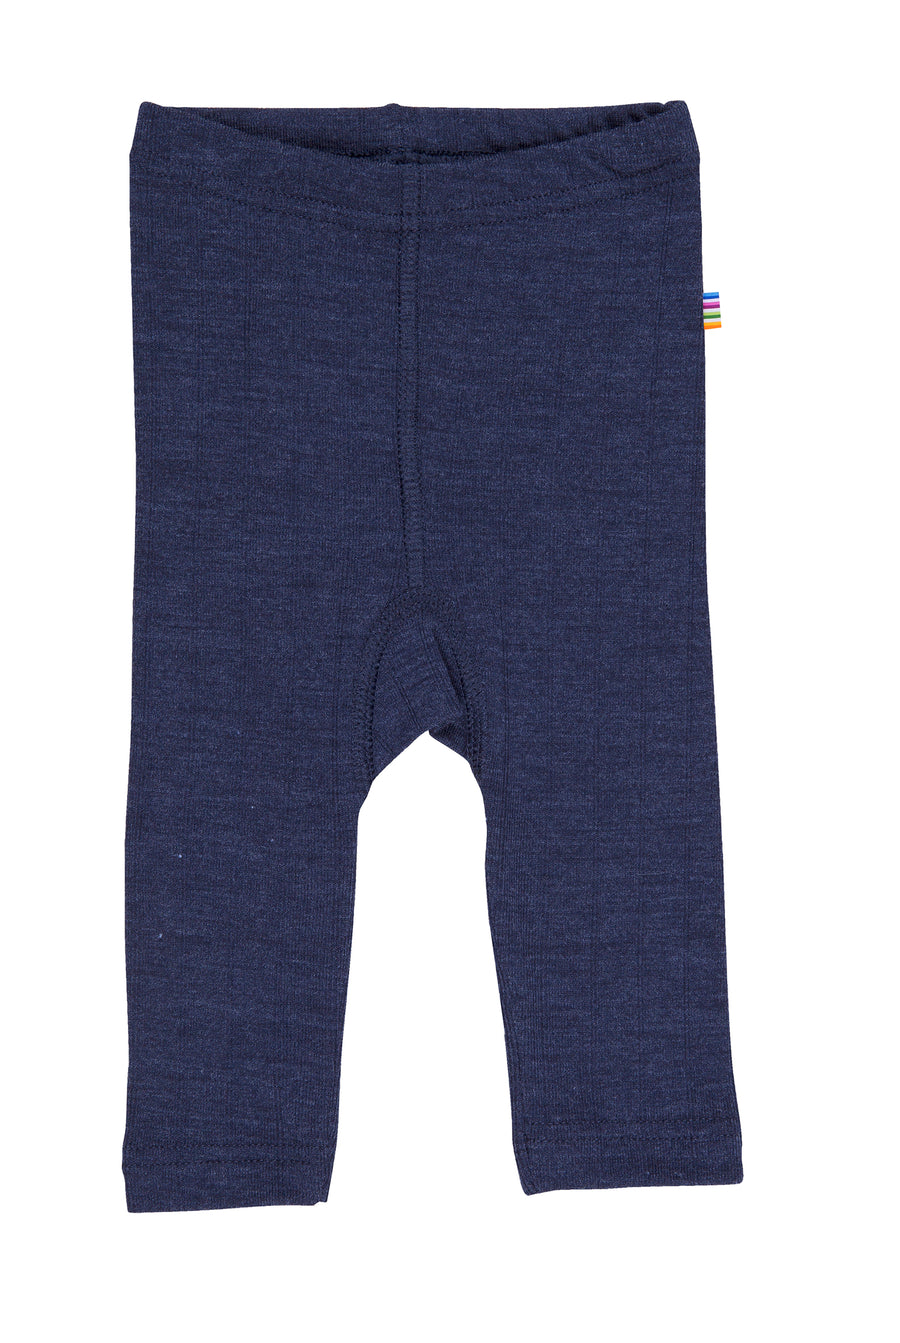 JOHA - Wool/Silk Rib Leggings - Navy